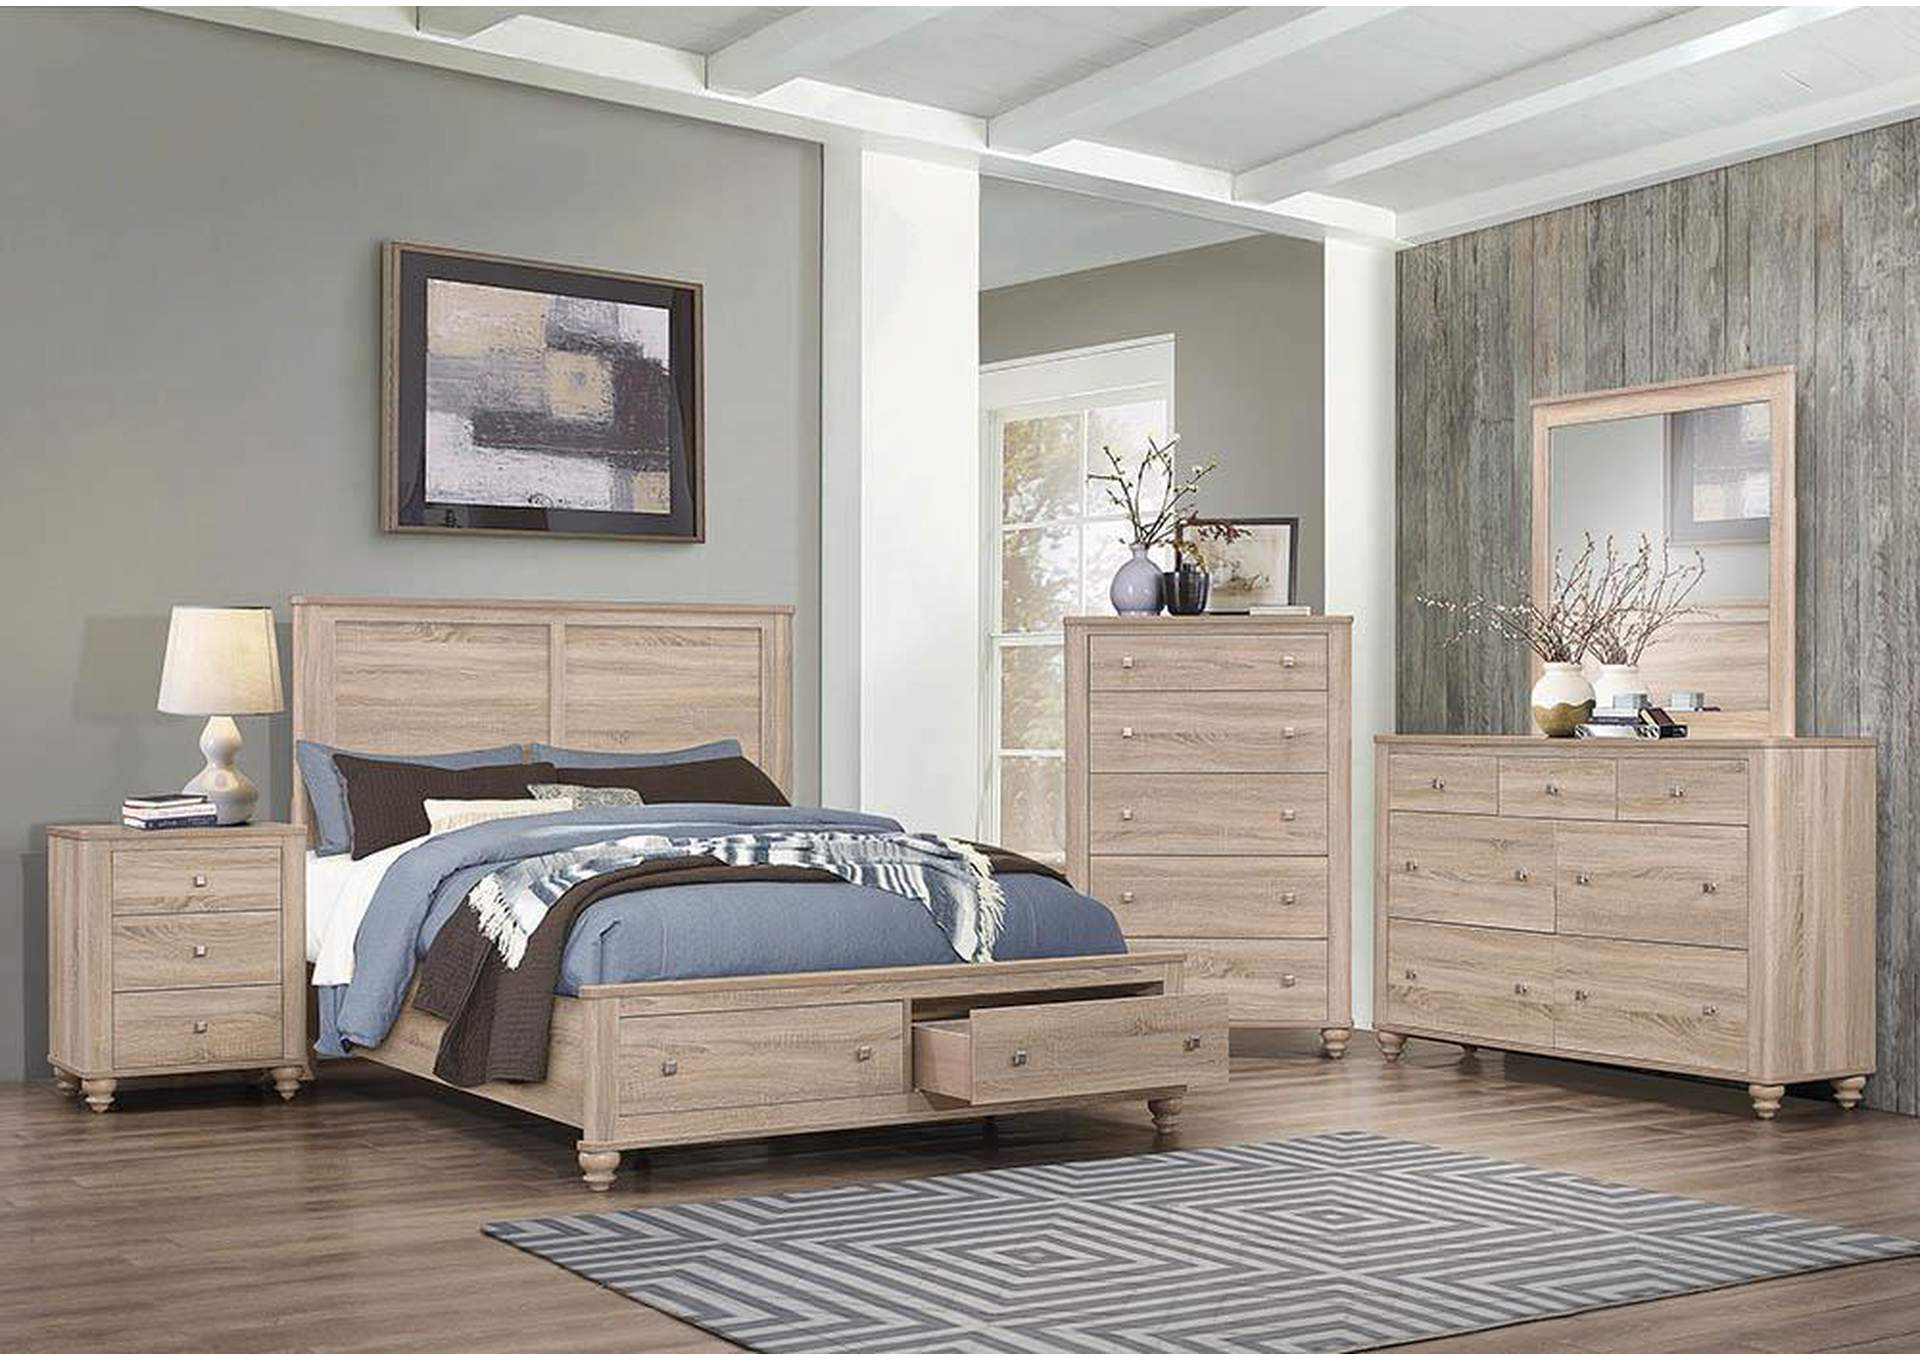 Wenham Natural Oak 5 Piece Queen Bedroom Set,Coaster Furniture